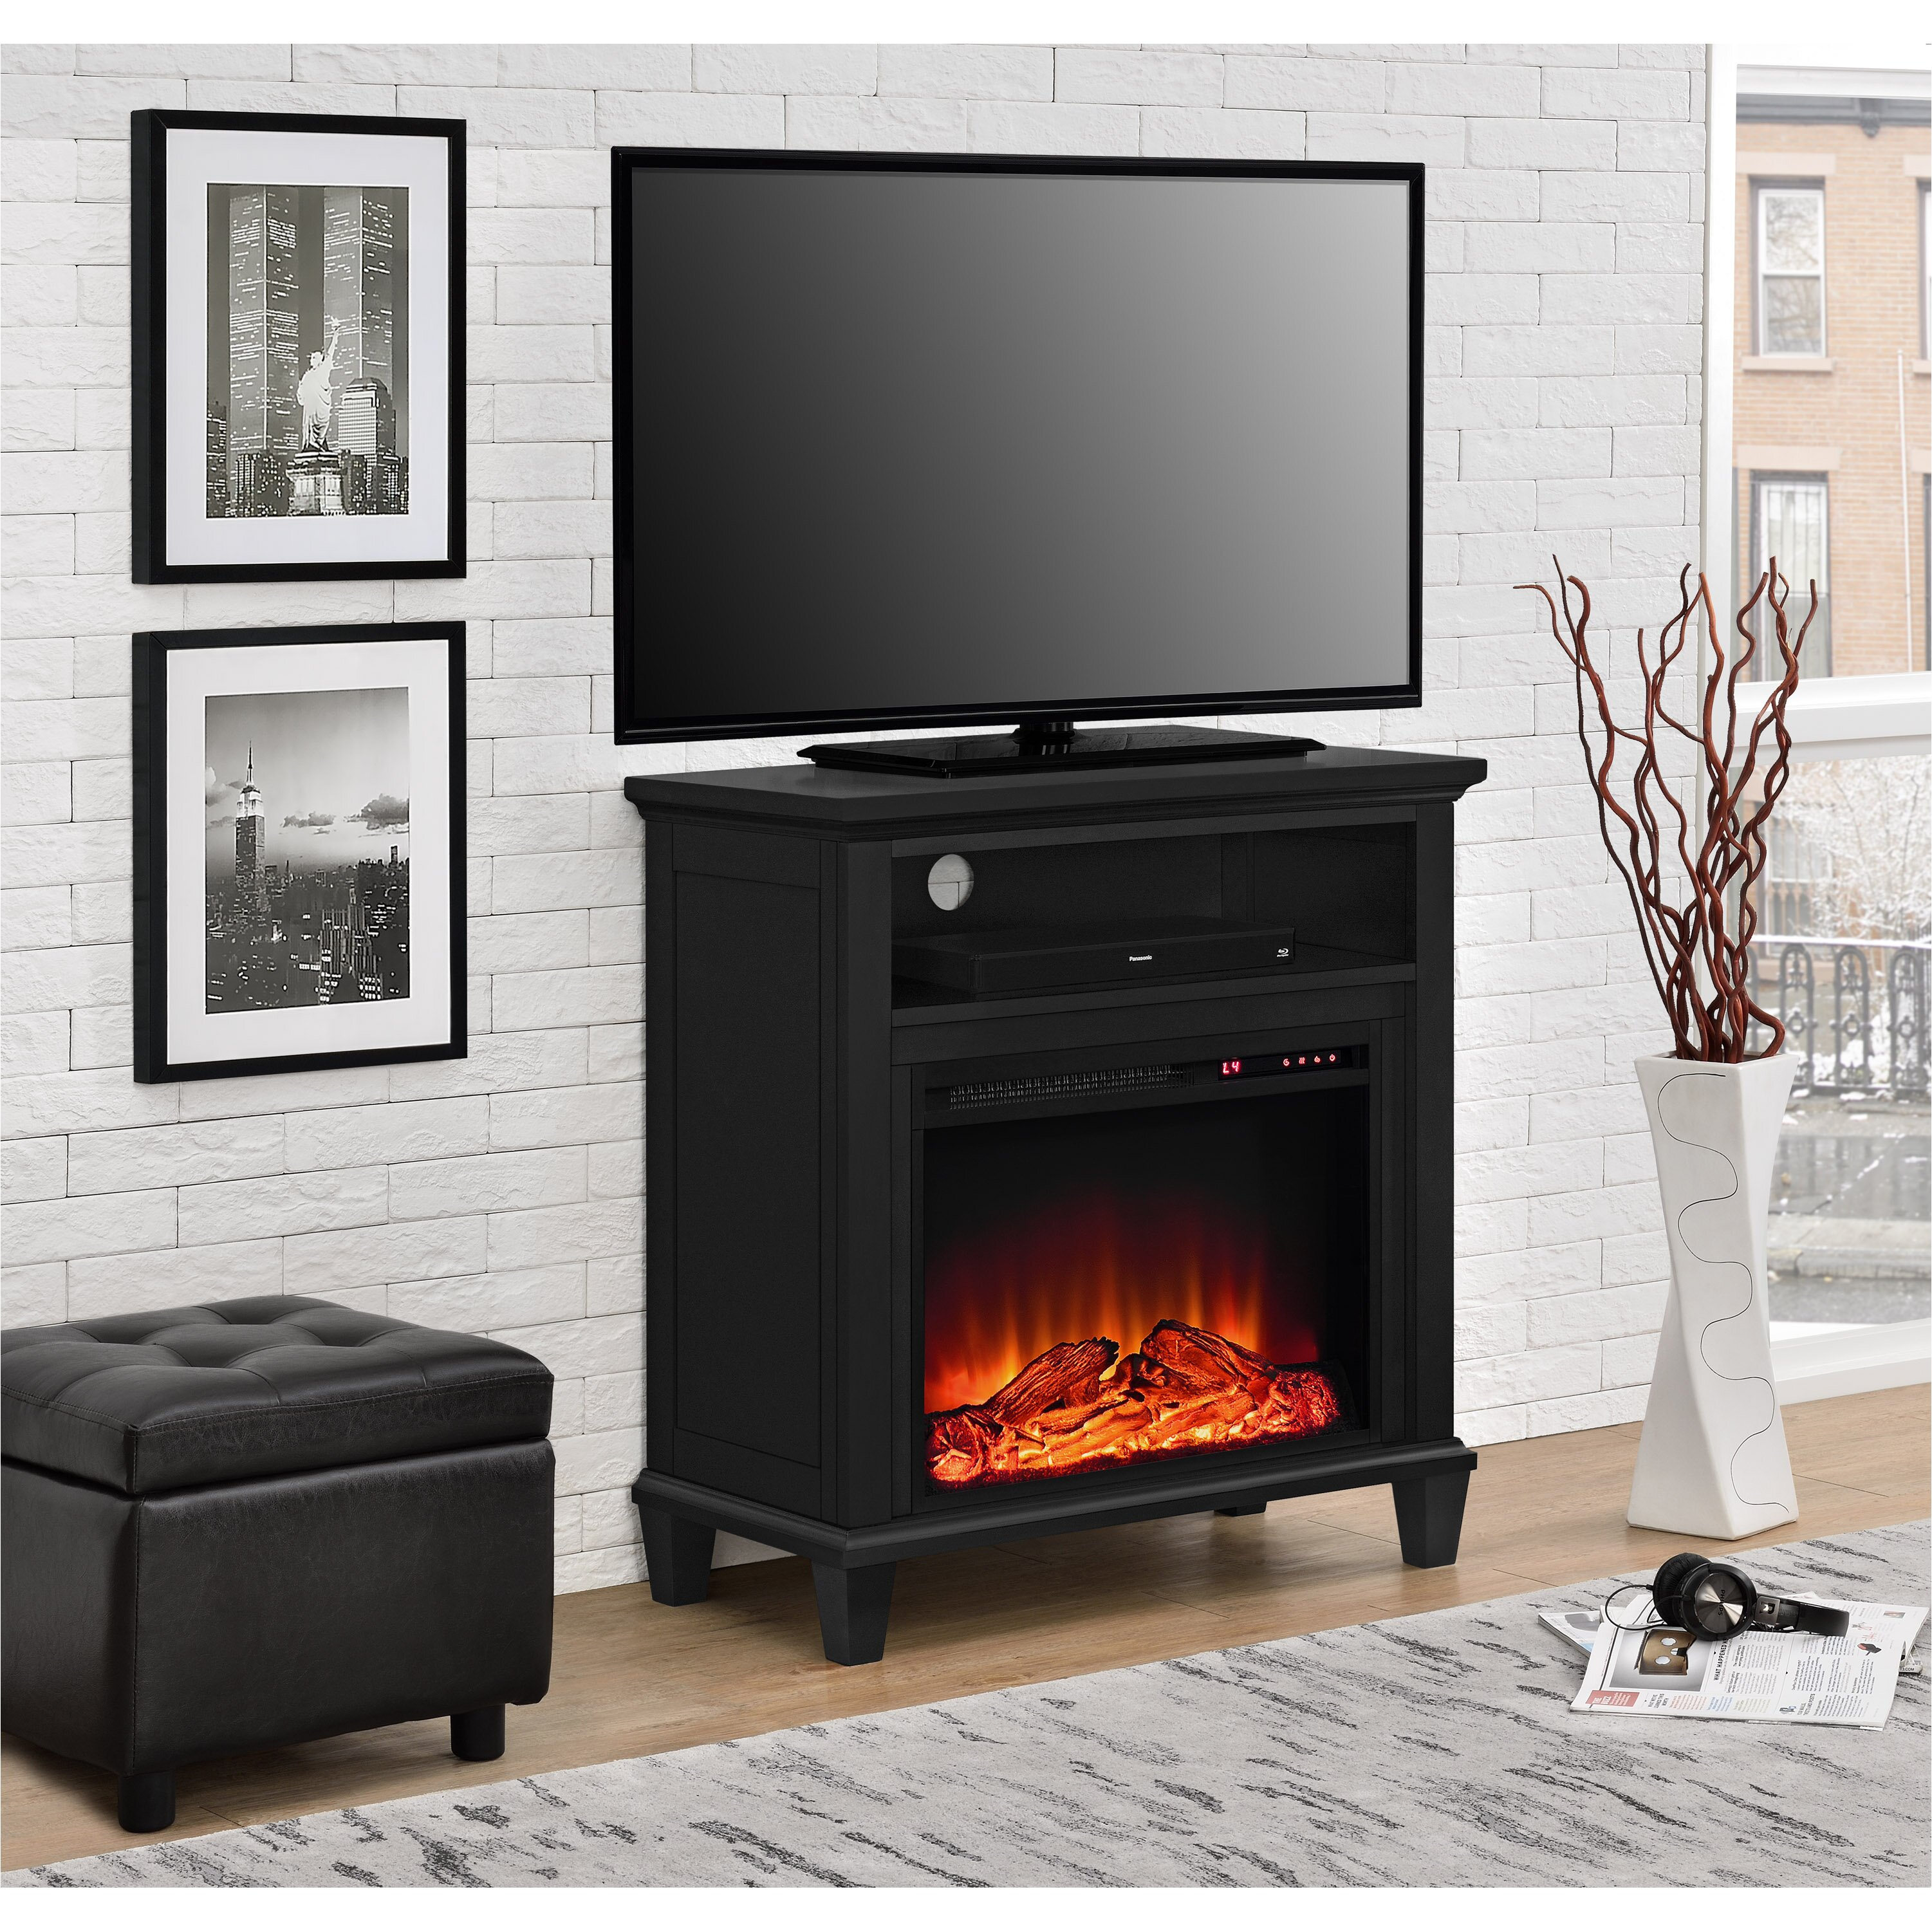 Cheap electric fireplace tv stand - Cheap Electric Fireplace Tv Stand 2